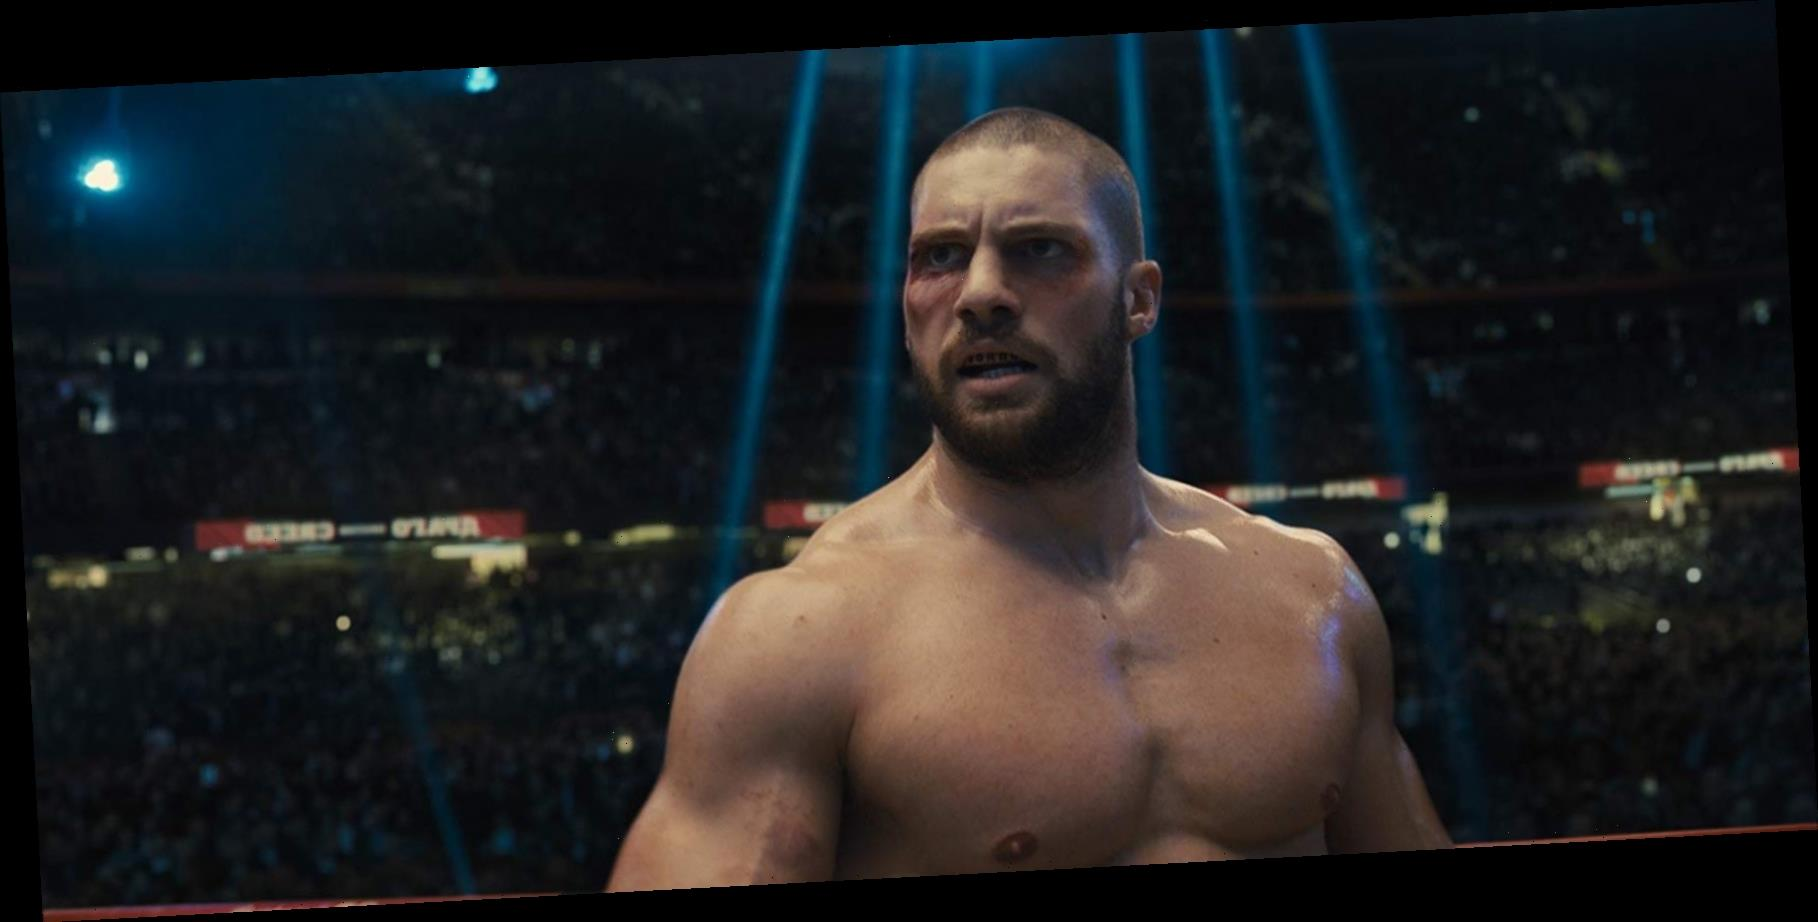 Marvel's 'Shang-Chi' May Have Recruited 'Creed II' Star Florian Munteanu as a Villain